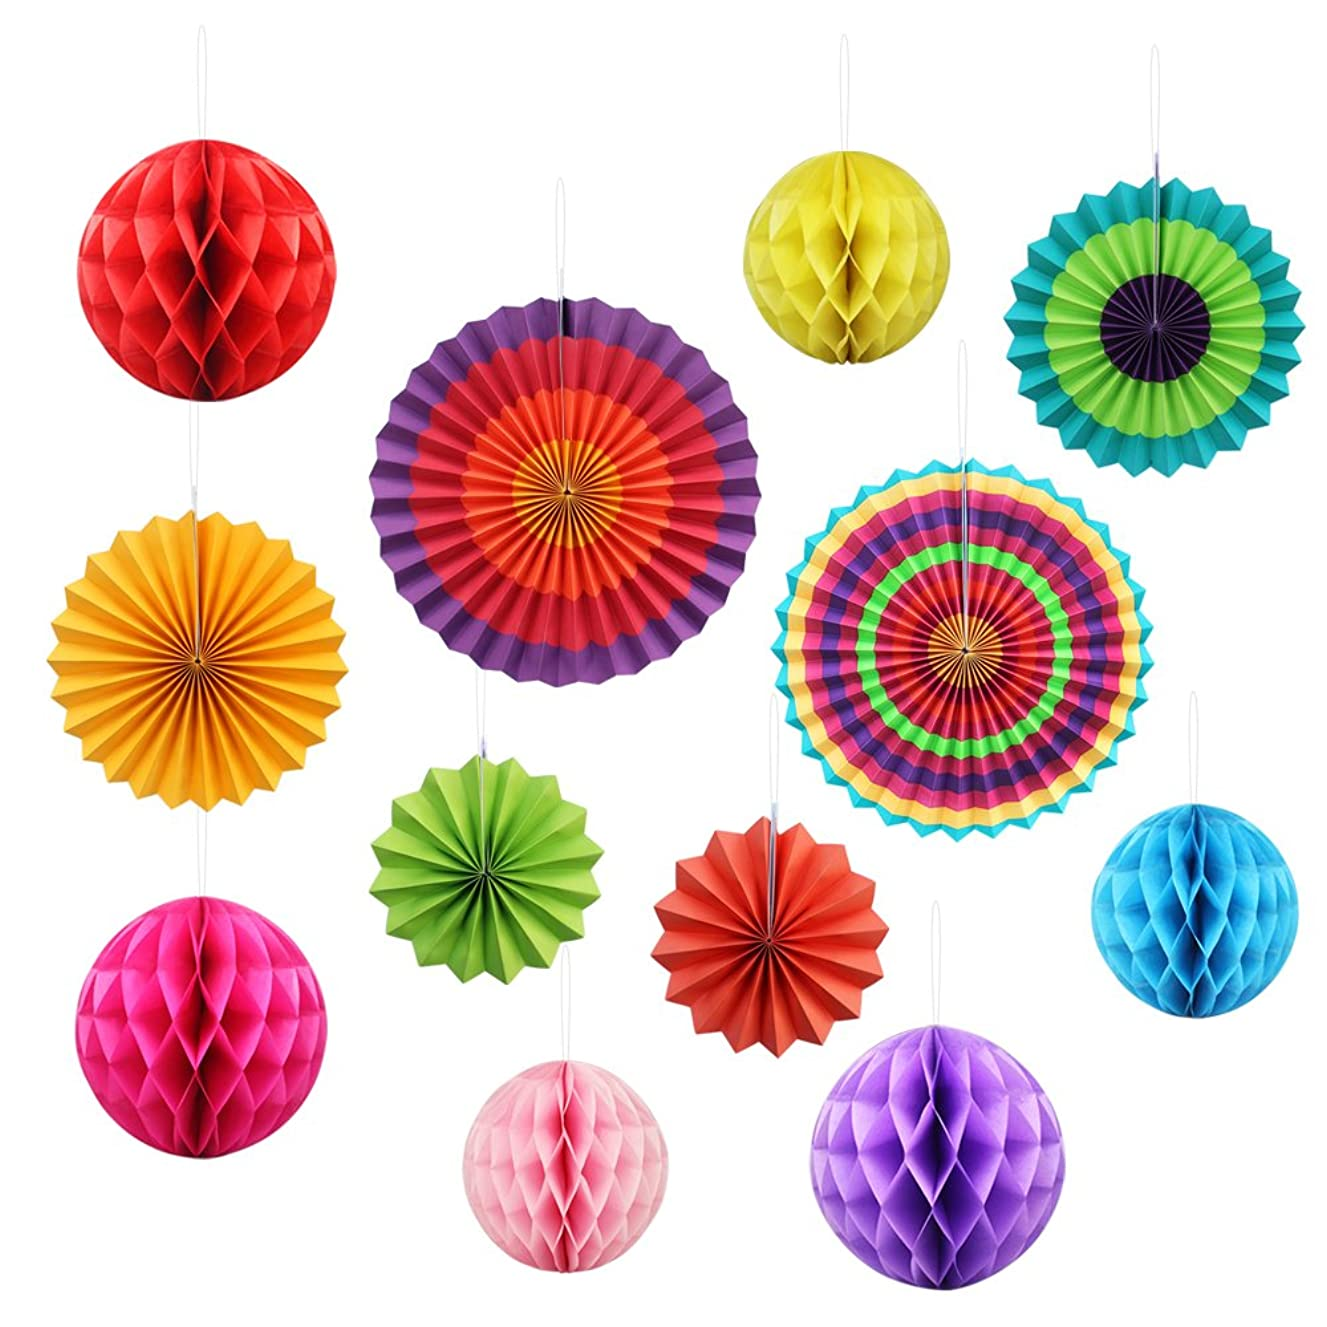 Fiesta Paper Fan Decoration Supplies,Yotako 6Pcs Round Wheel Tissue Paper Fan + 6Pcs Hanging Paper Honeycomb Balls?Lantern for Christmas Wedding Party Baby Shower First Birthday Wall Decor